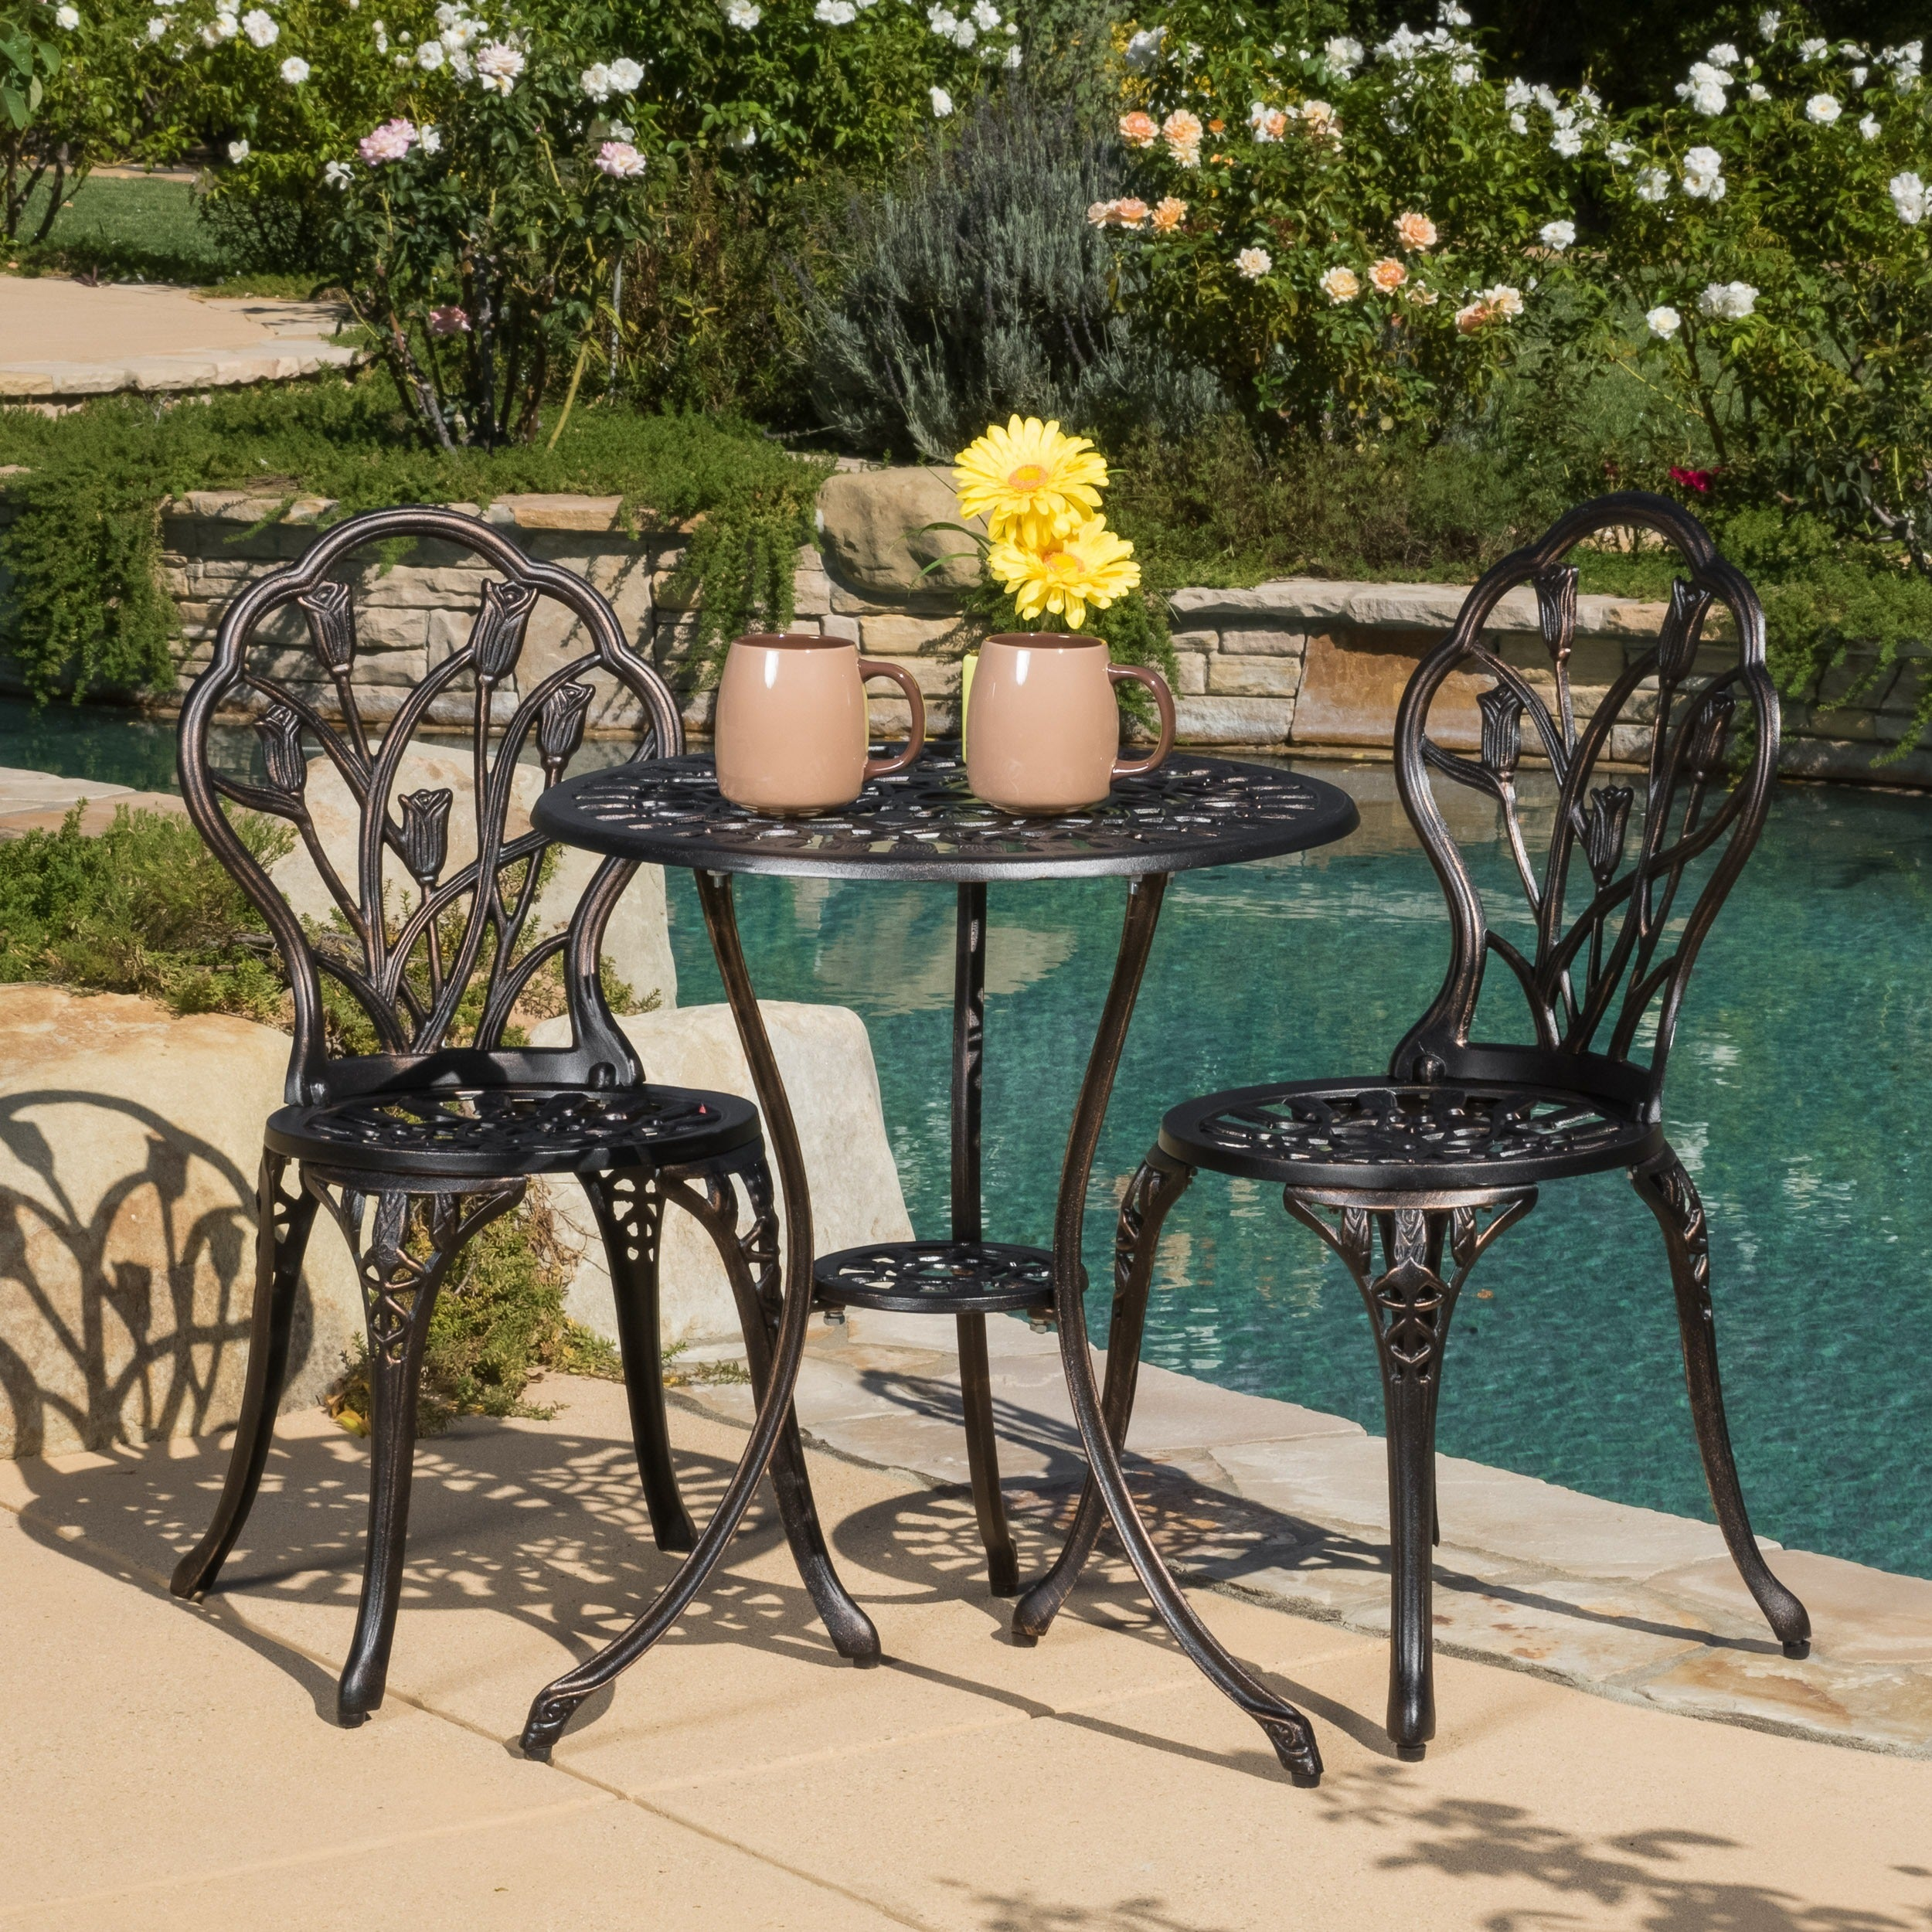 Nau Cast Aluminum Outdoor Bistro Furniture Set By Christopher Knight Home Free Shipping Today 4787251